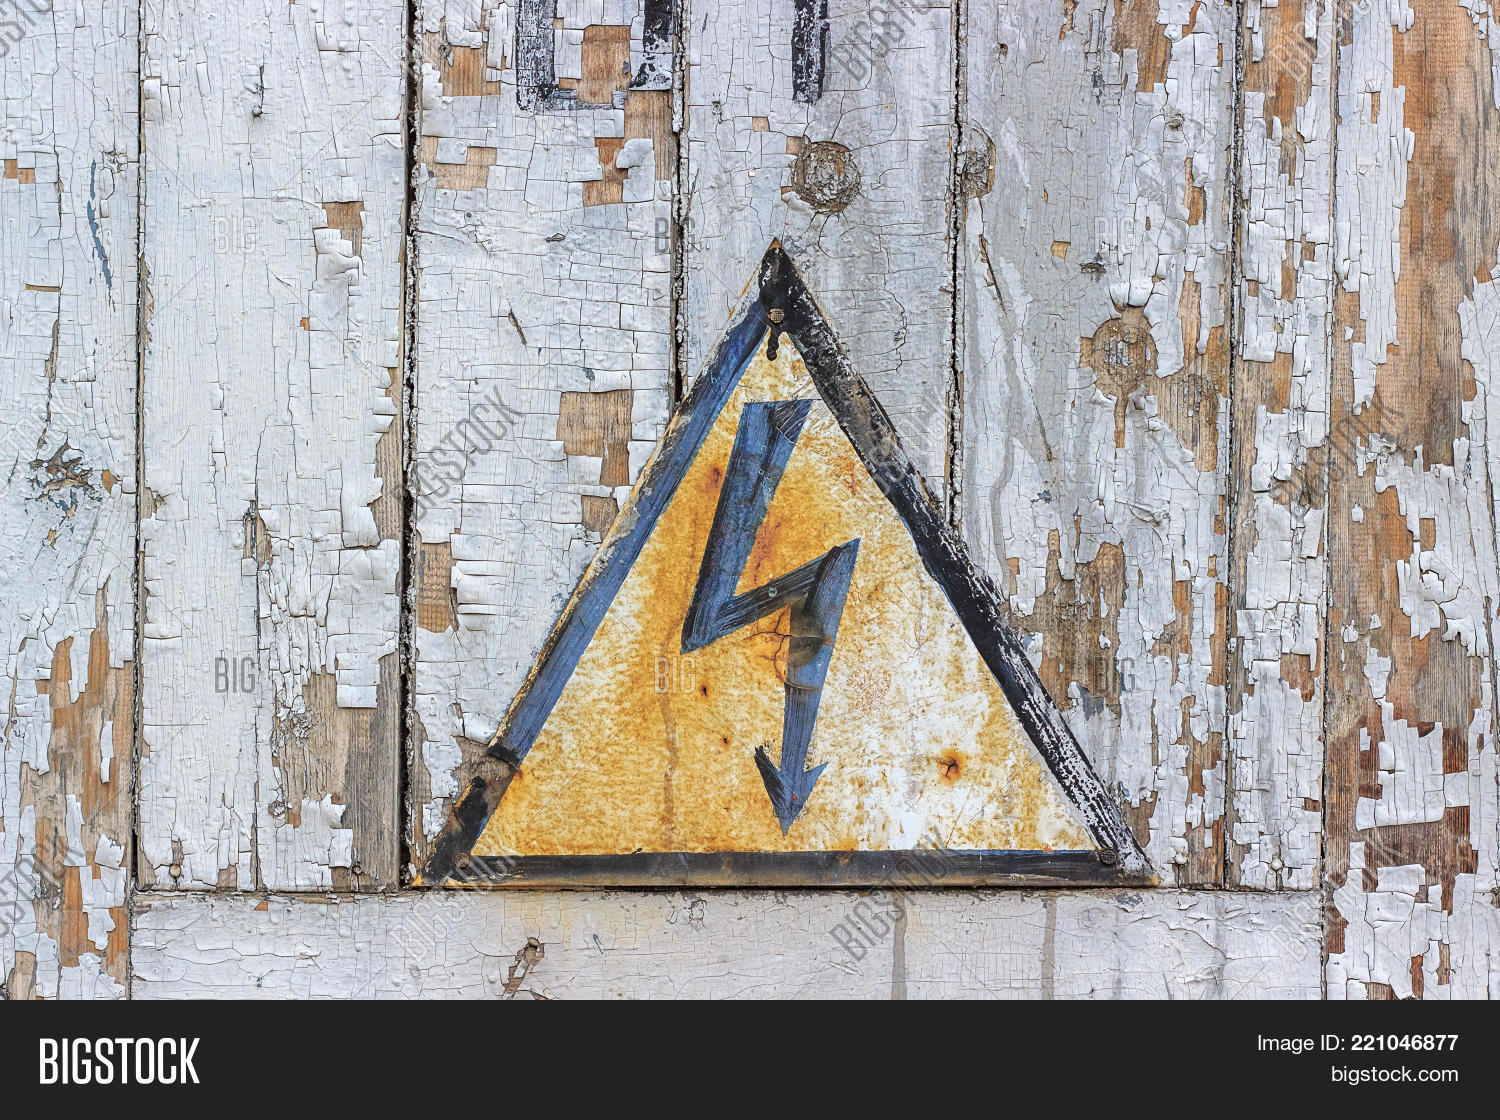 Old Rusty Sign Danger Image & Photo (Free Trial) | Bigstock